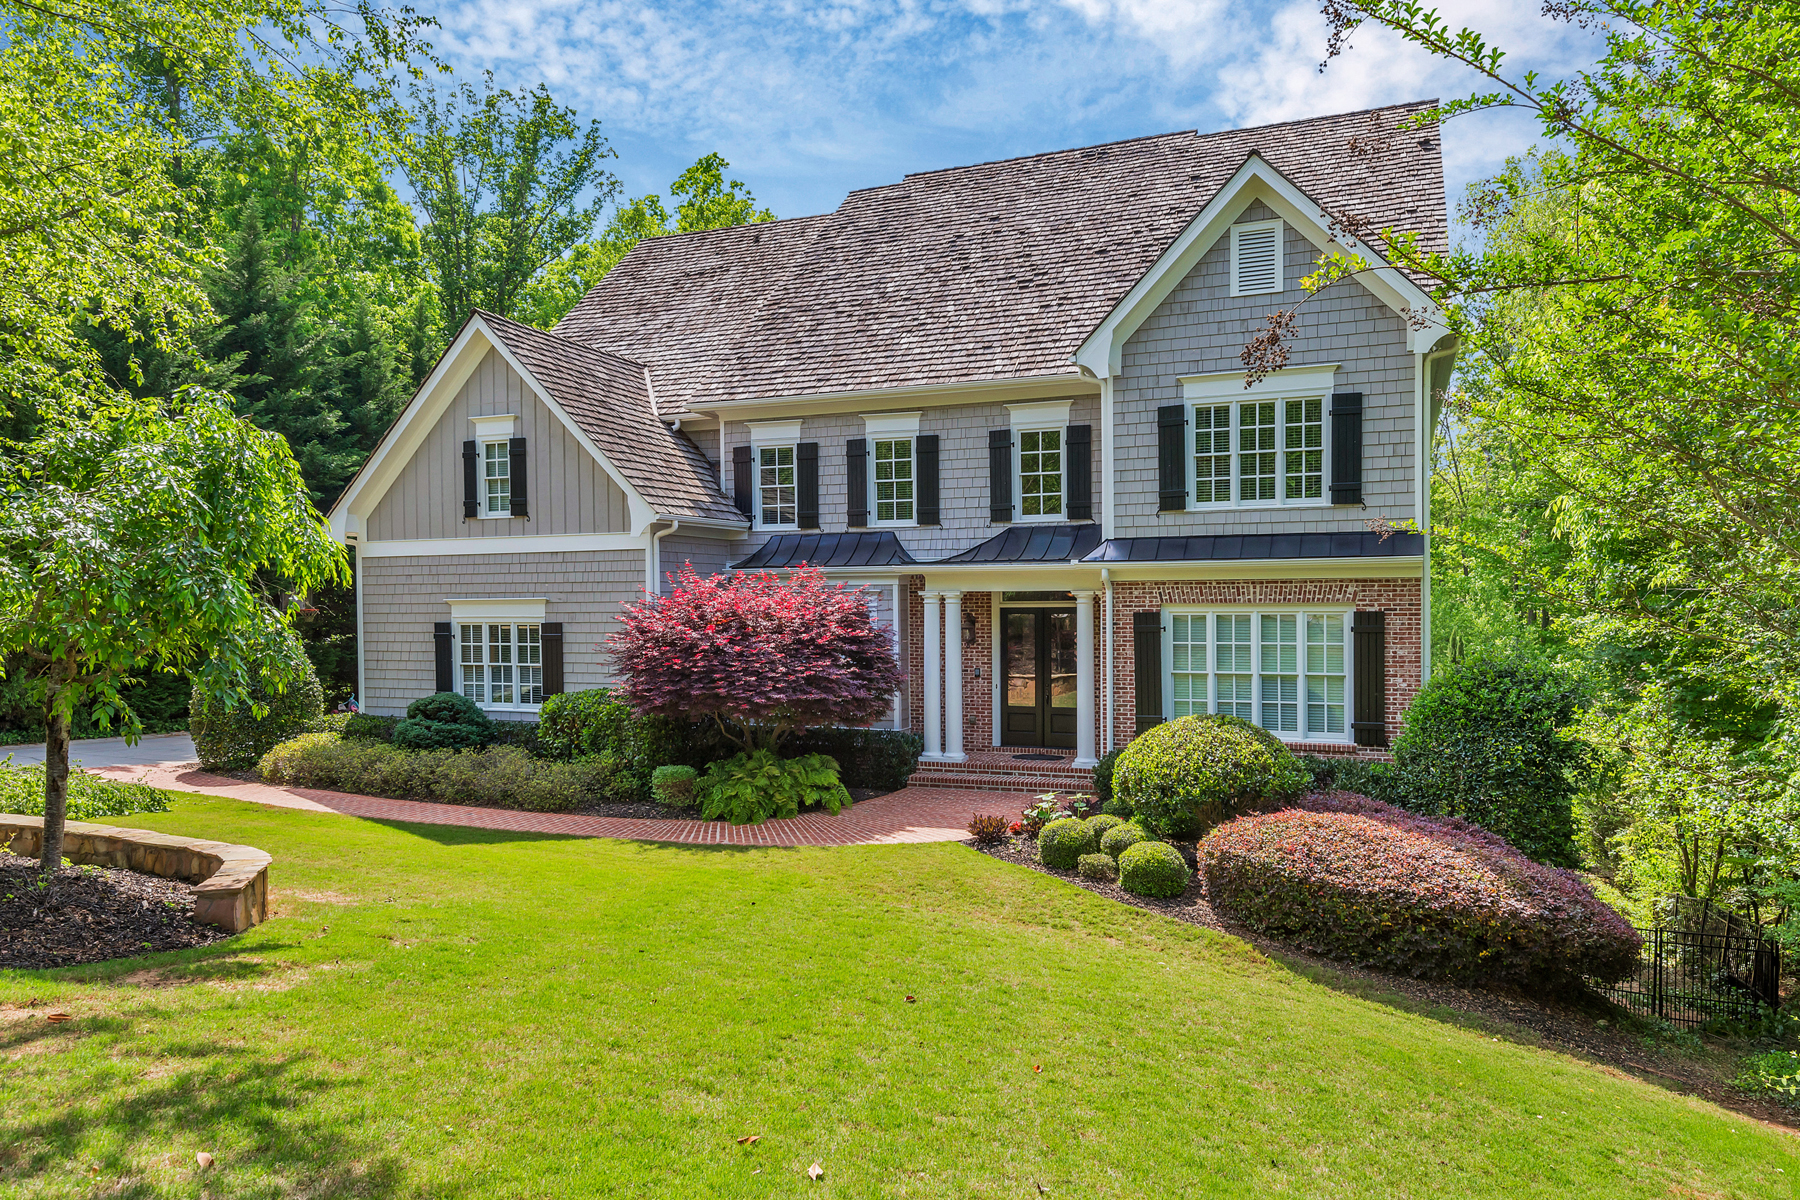 Single Family Home for Sale at Exquisite Executive Home with Custom Heated Pool and Cascading Stream in Milton 13220 Owens Way Alpharetta, Georgia 30004 United States